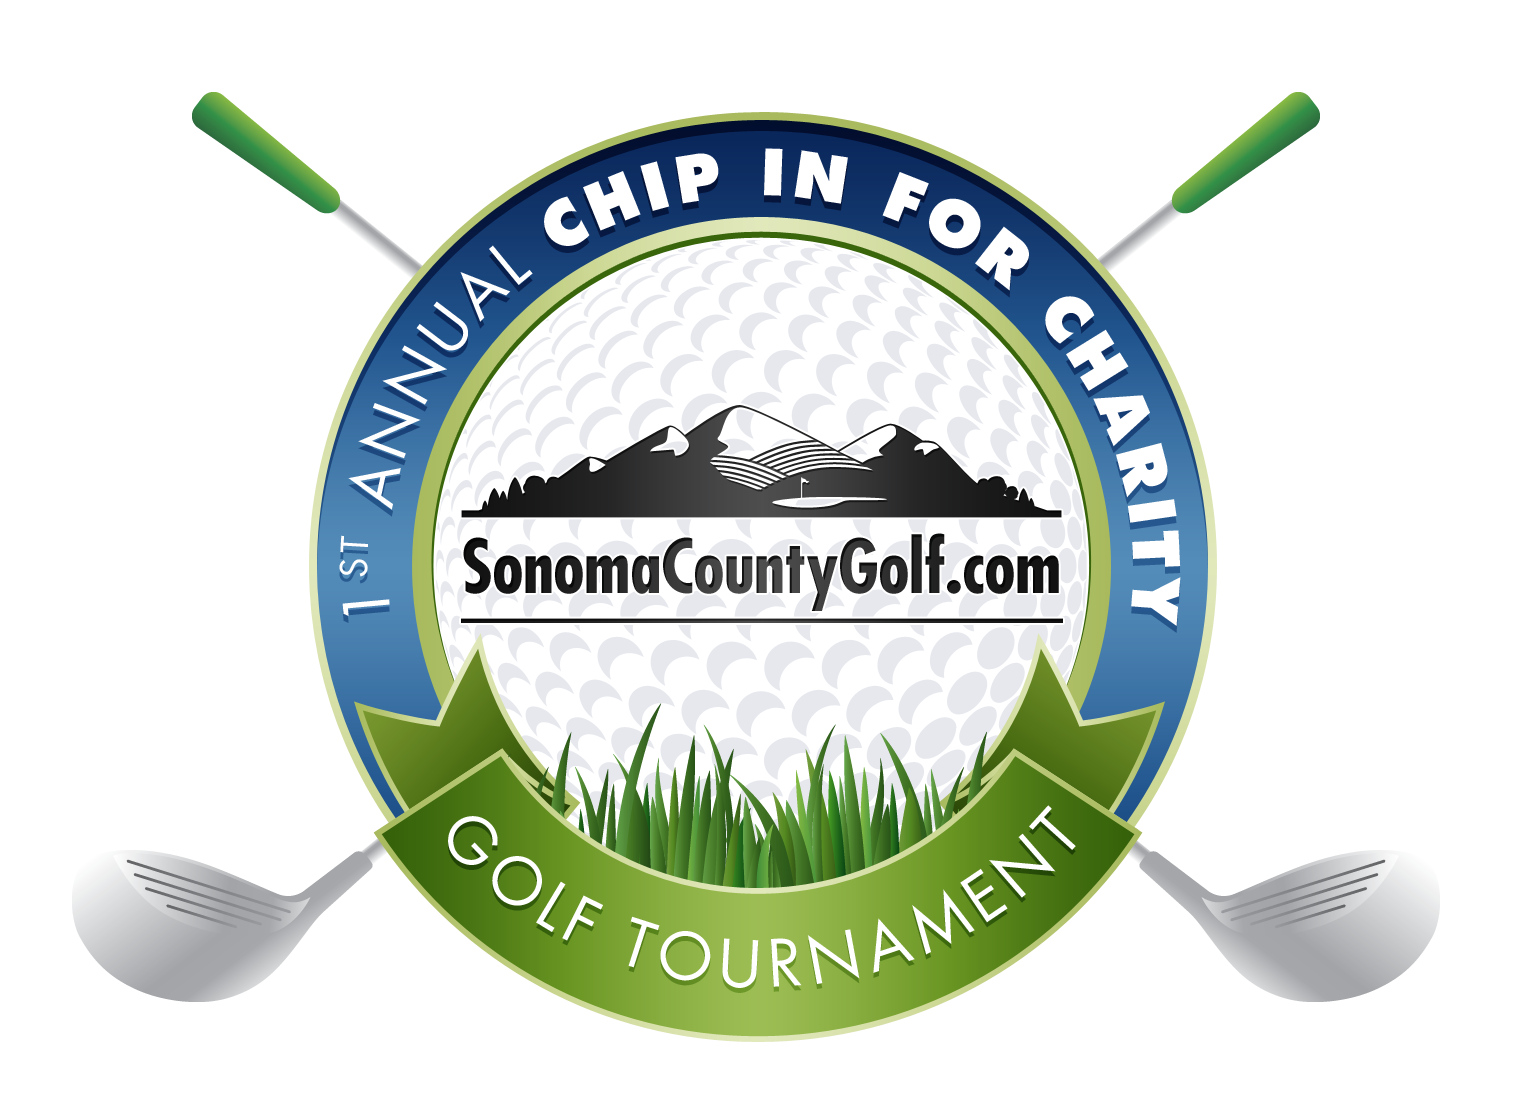 Sonoma County Golf 1st Annual Chip In For Charity Golf Tournament logo